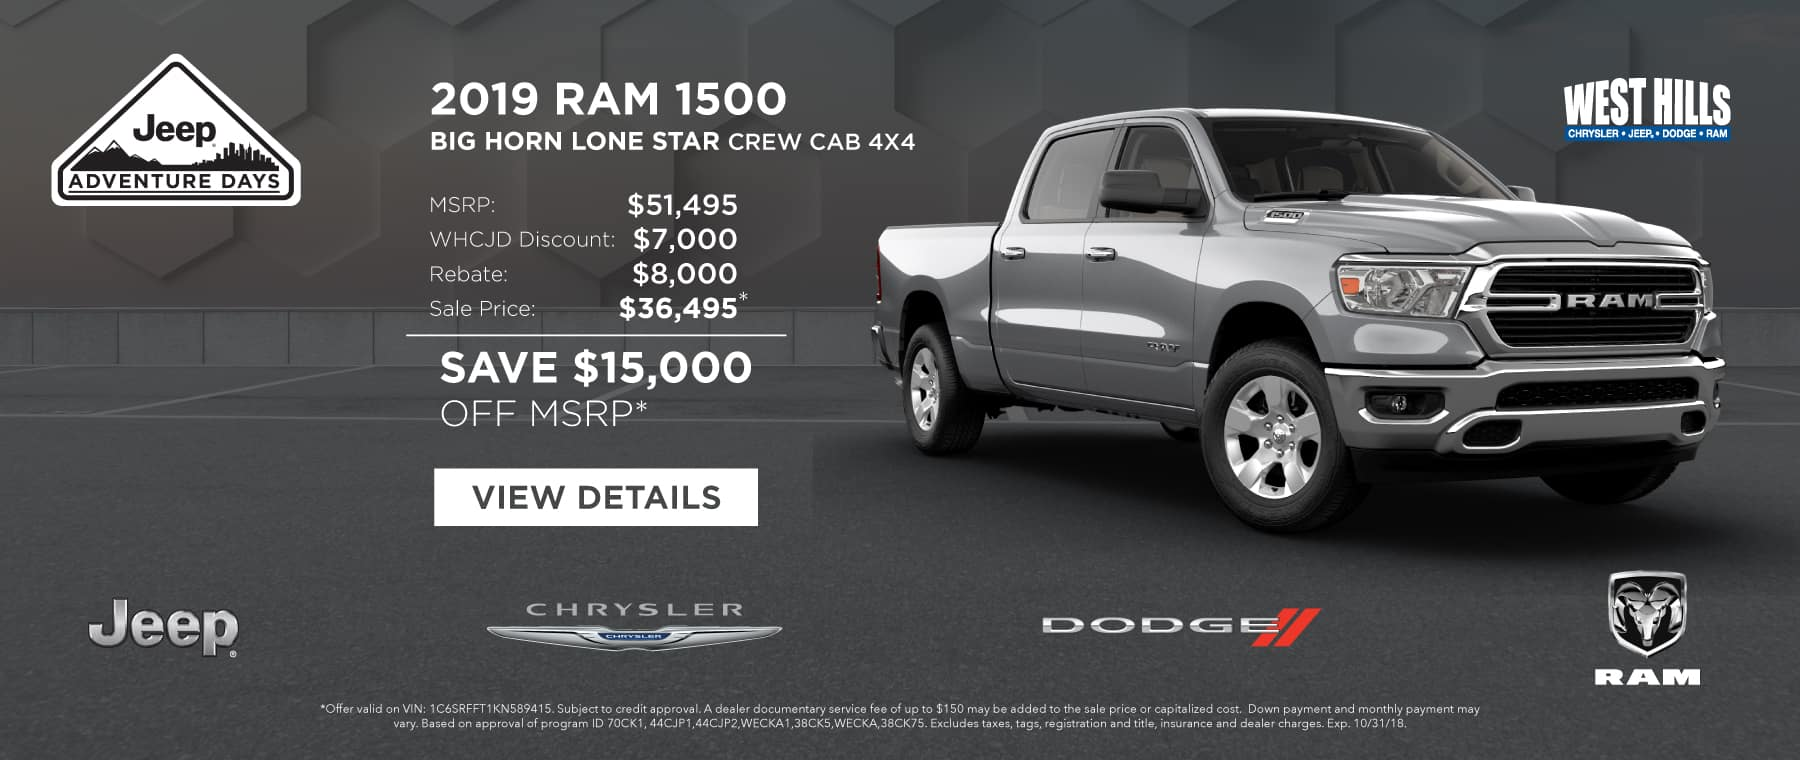 2019 Ram 1500 Big Horn Lone Star Crew Cab 4X4  (FEATURED VEHICLE)